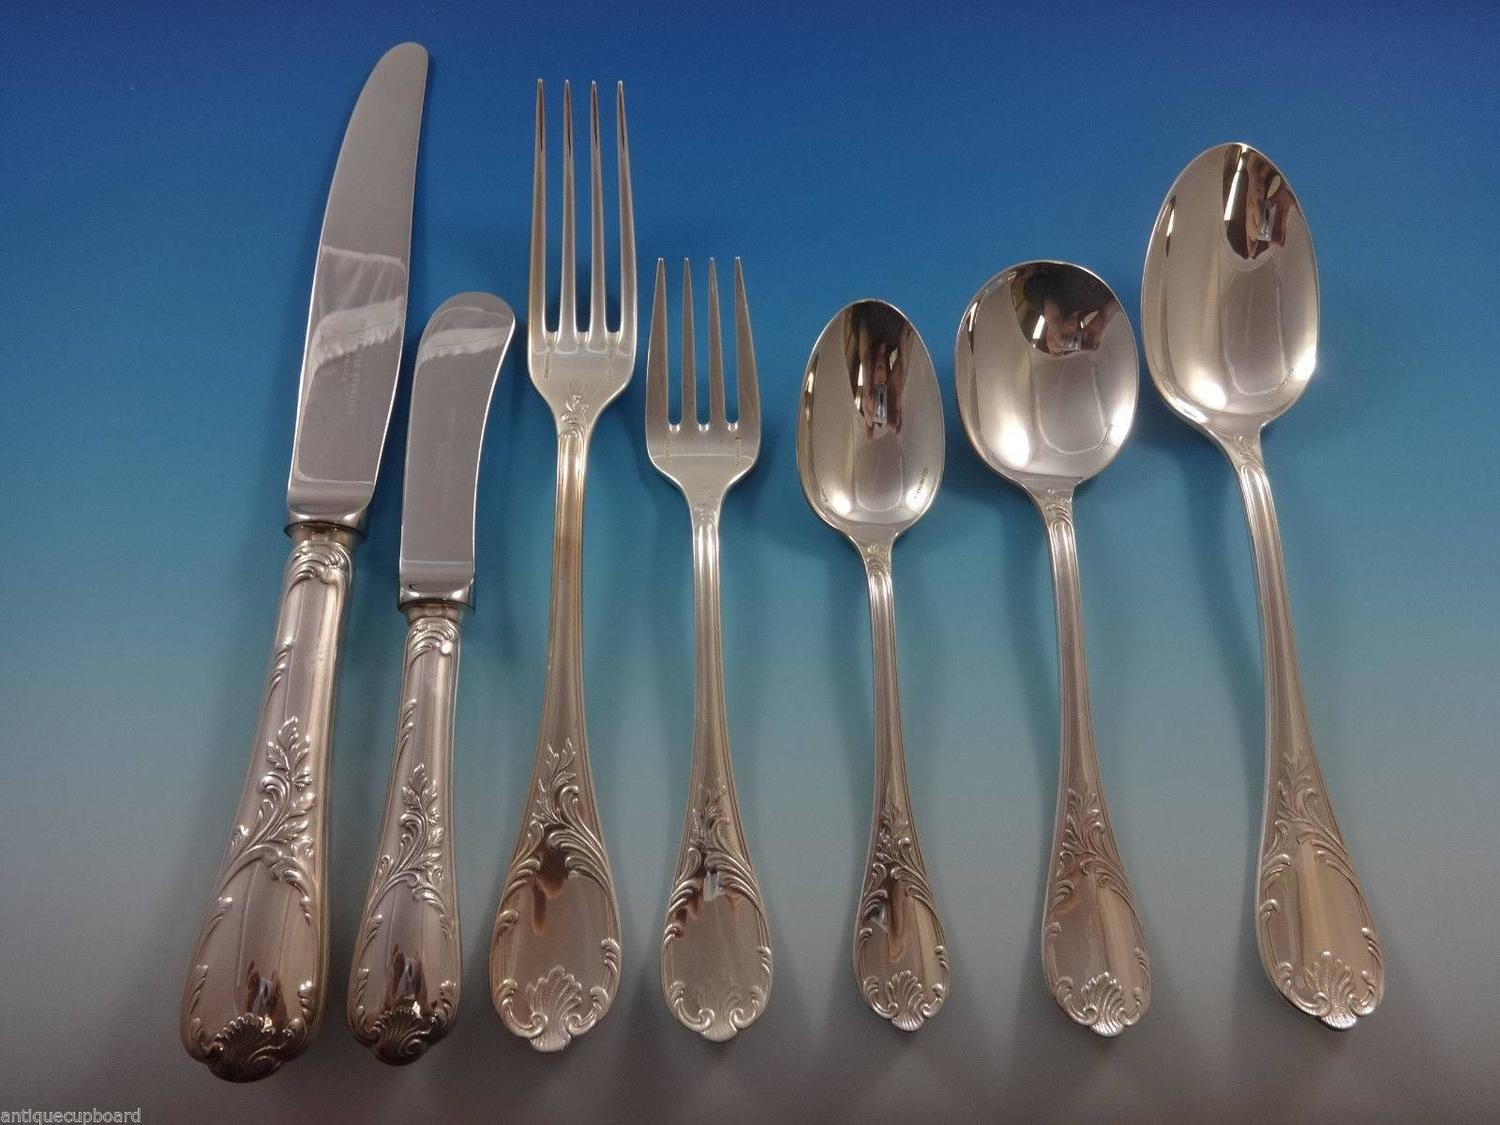 marly by christofle sterling silver flatware dinner service 24 set 159 pieces at 1stdibs. Black Bedroom Furniture Sets. Home Design Ideas